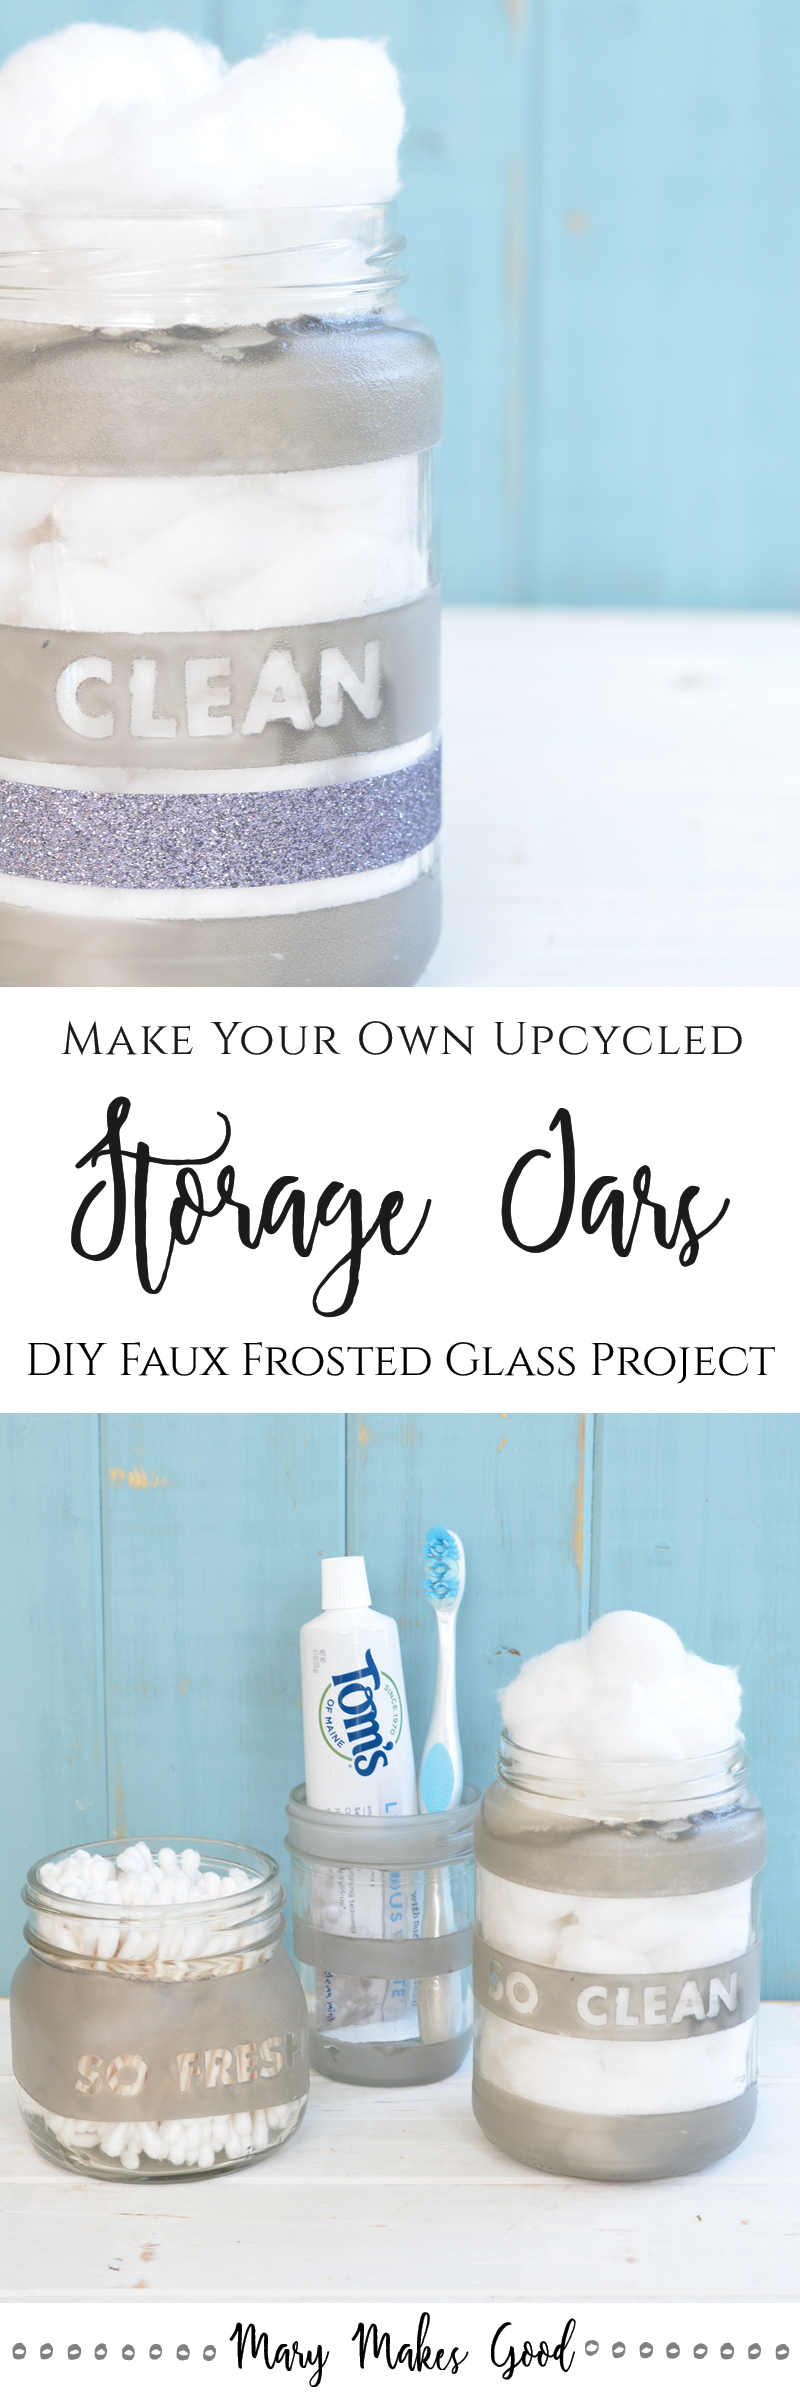 Make Your Own Upcycled Bathroom Storage Jars » Mary Makes Good